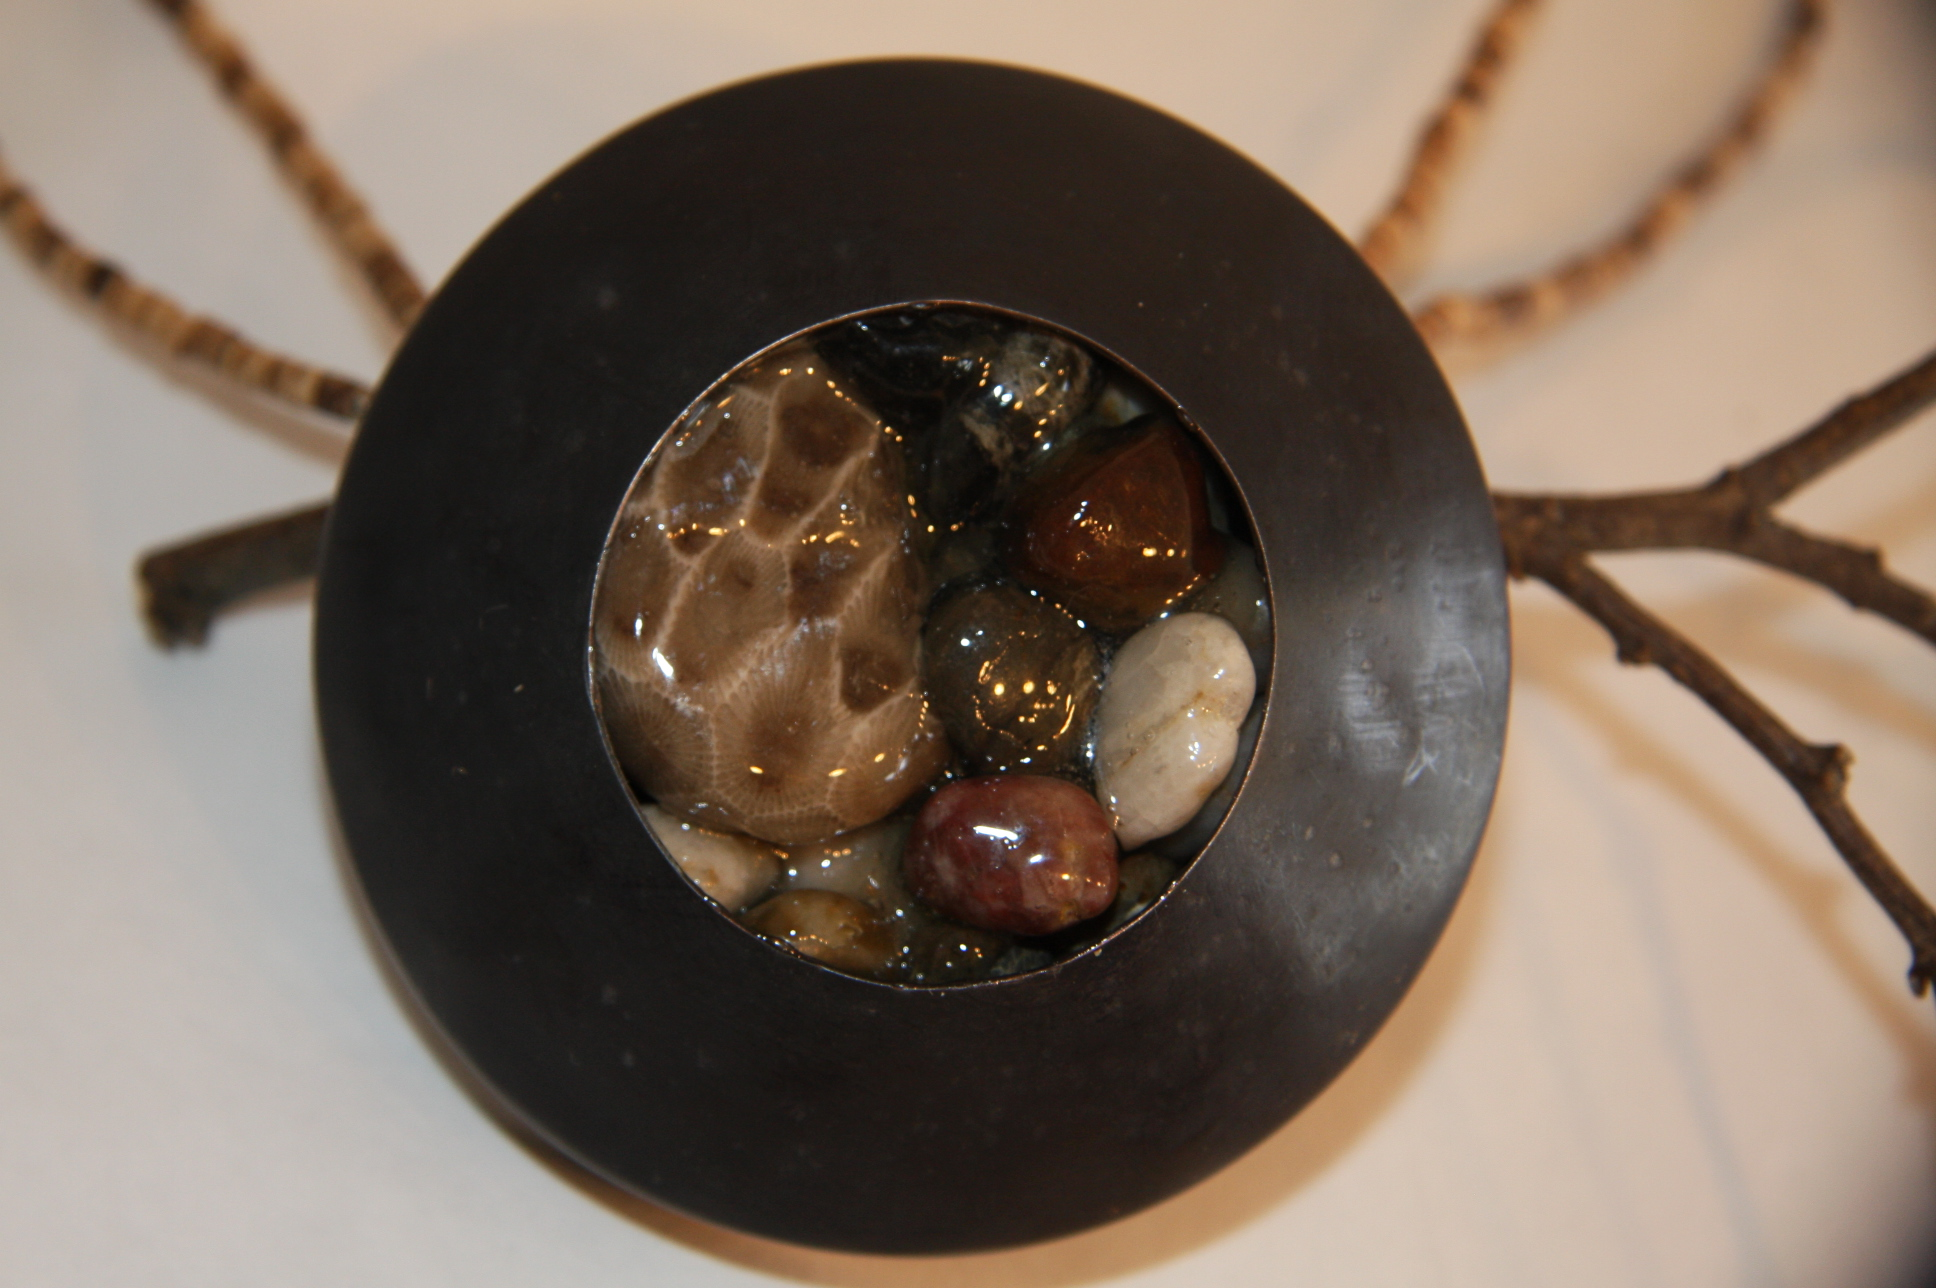 Petoskey Stone Chest Piece - $80.00